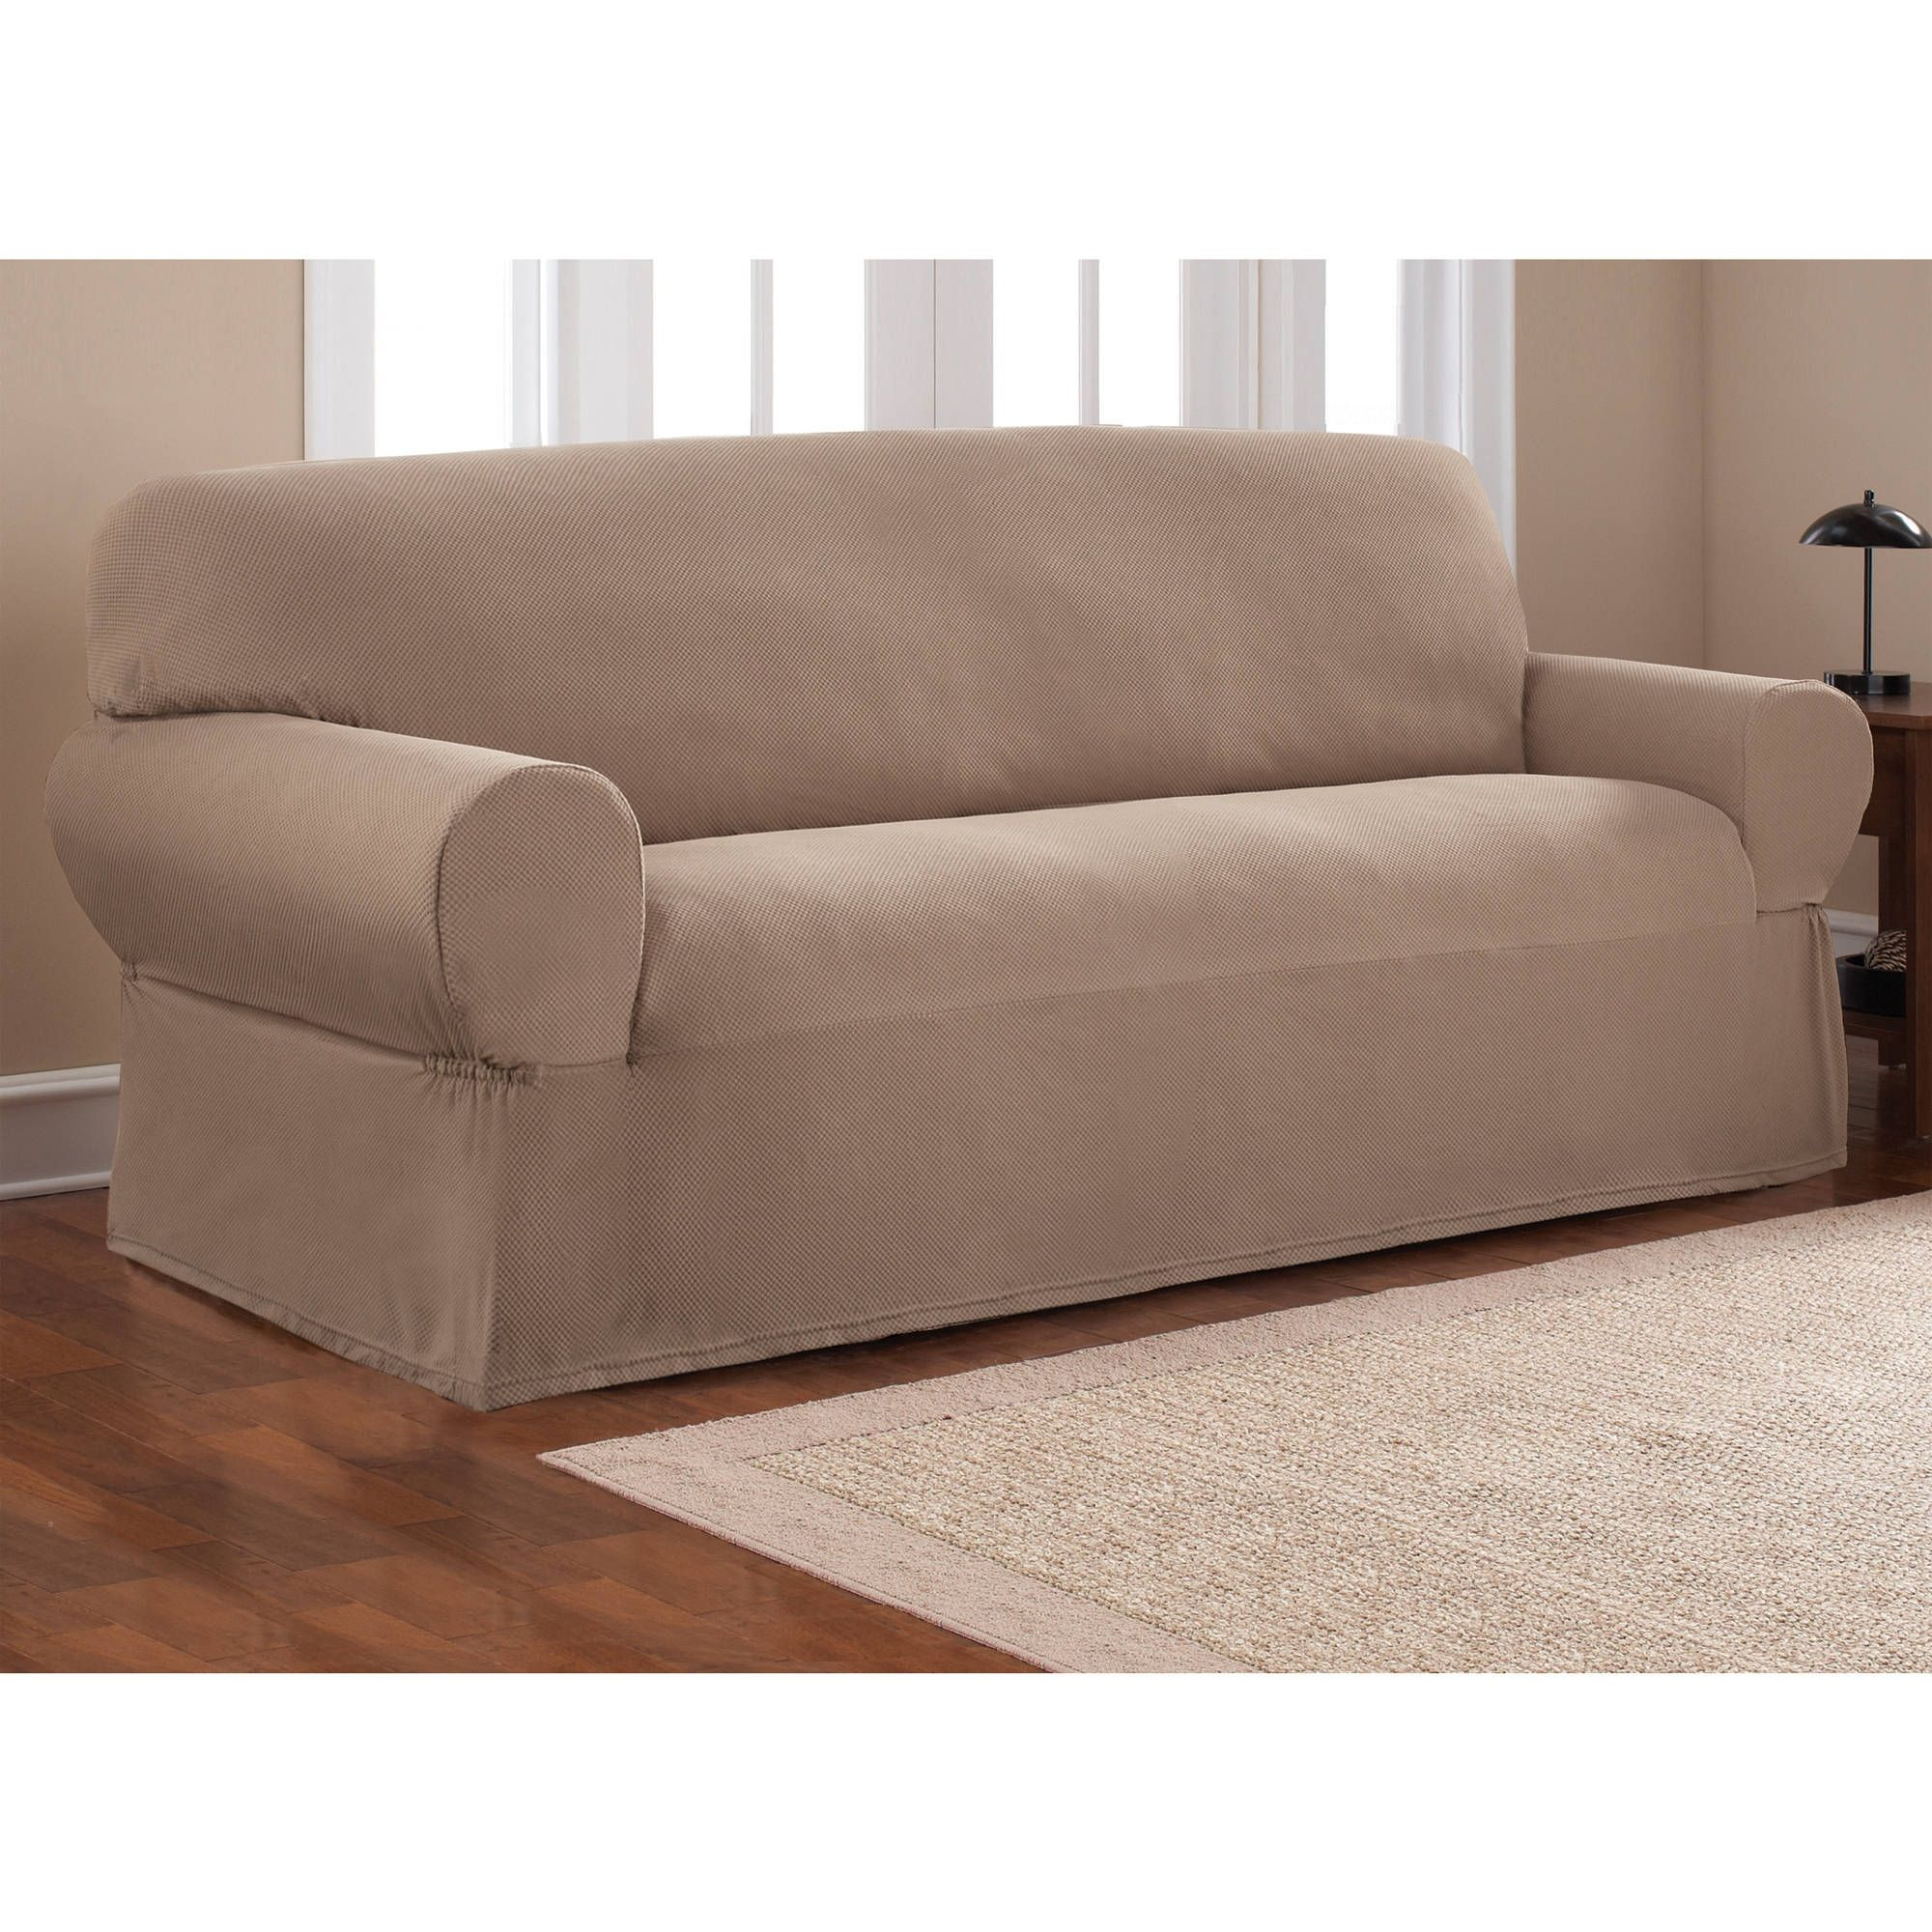 Stretch Covers For Sofas